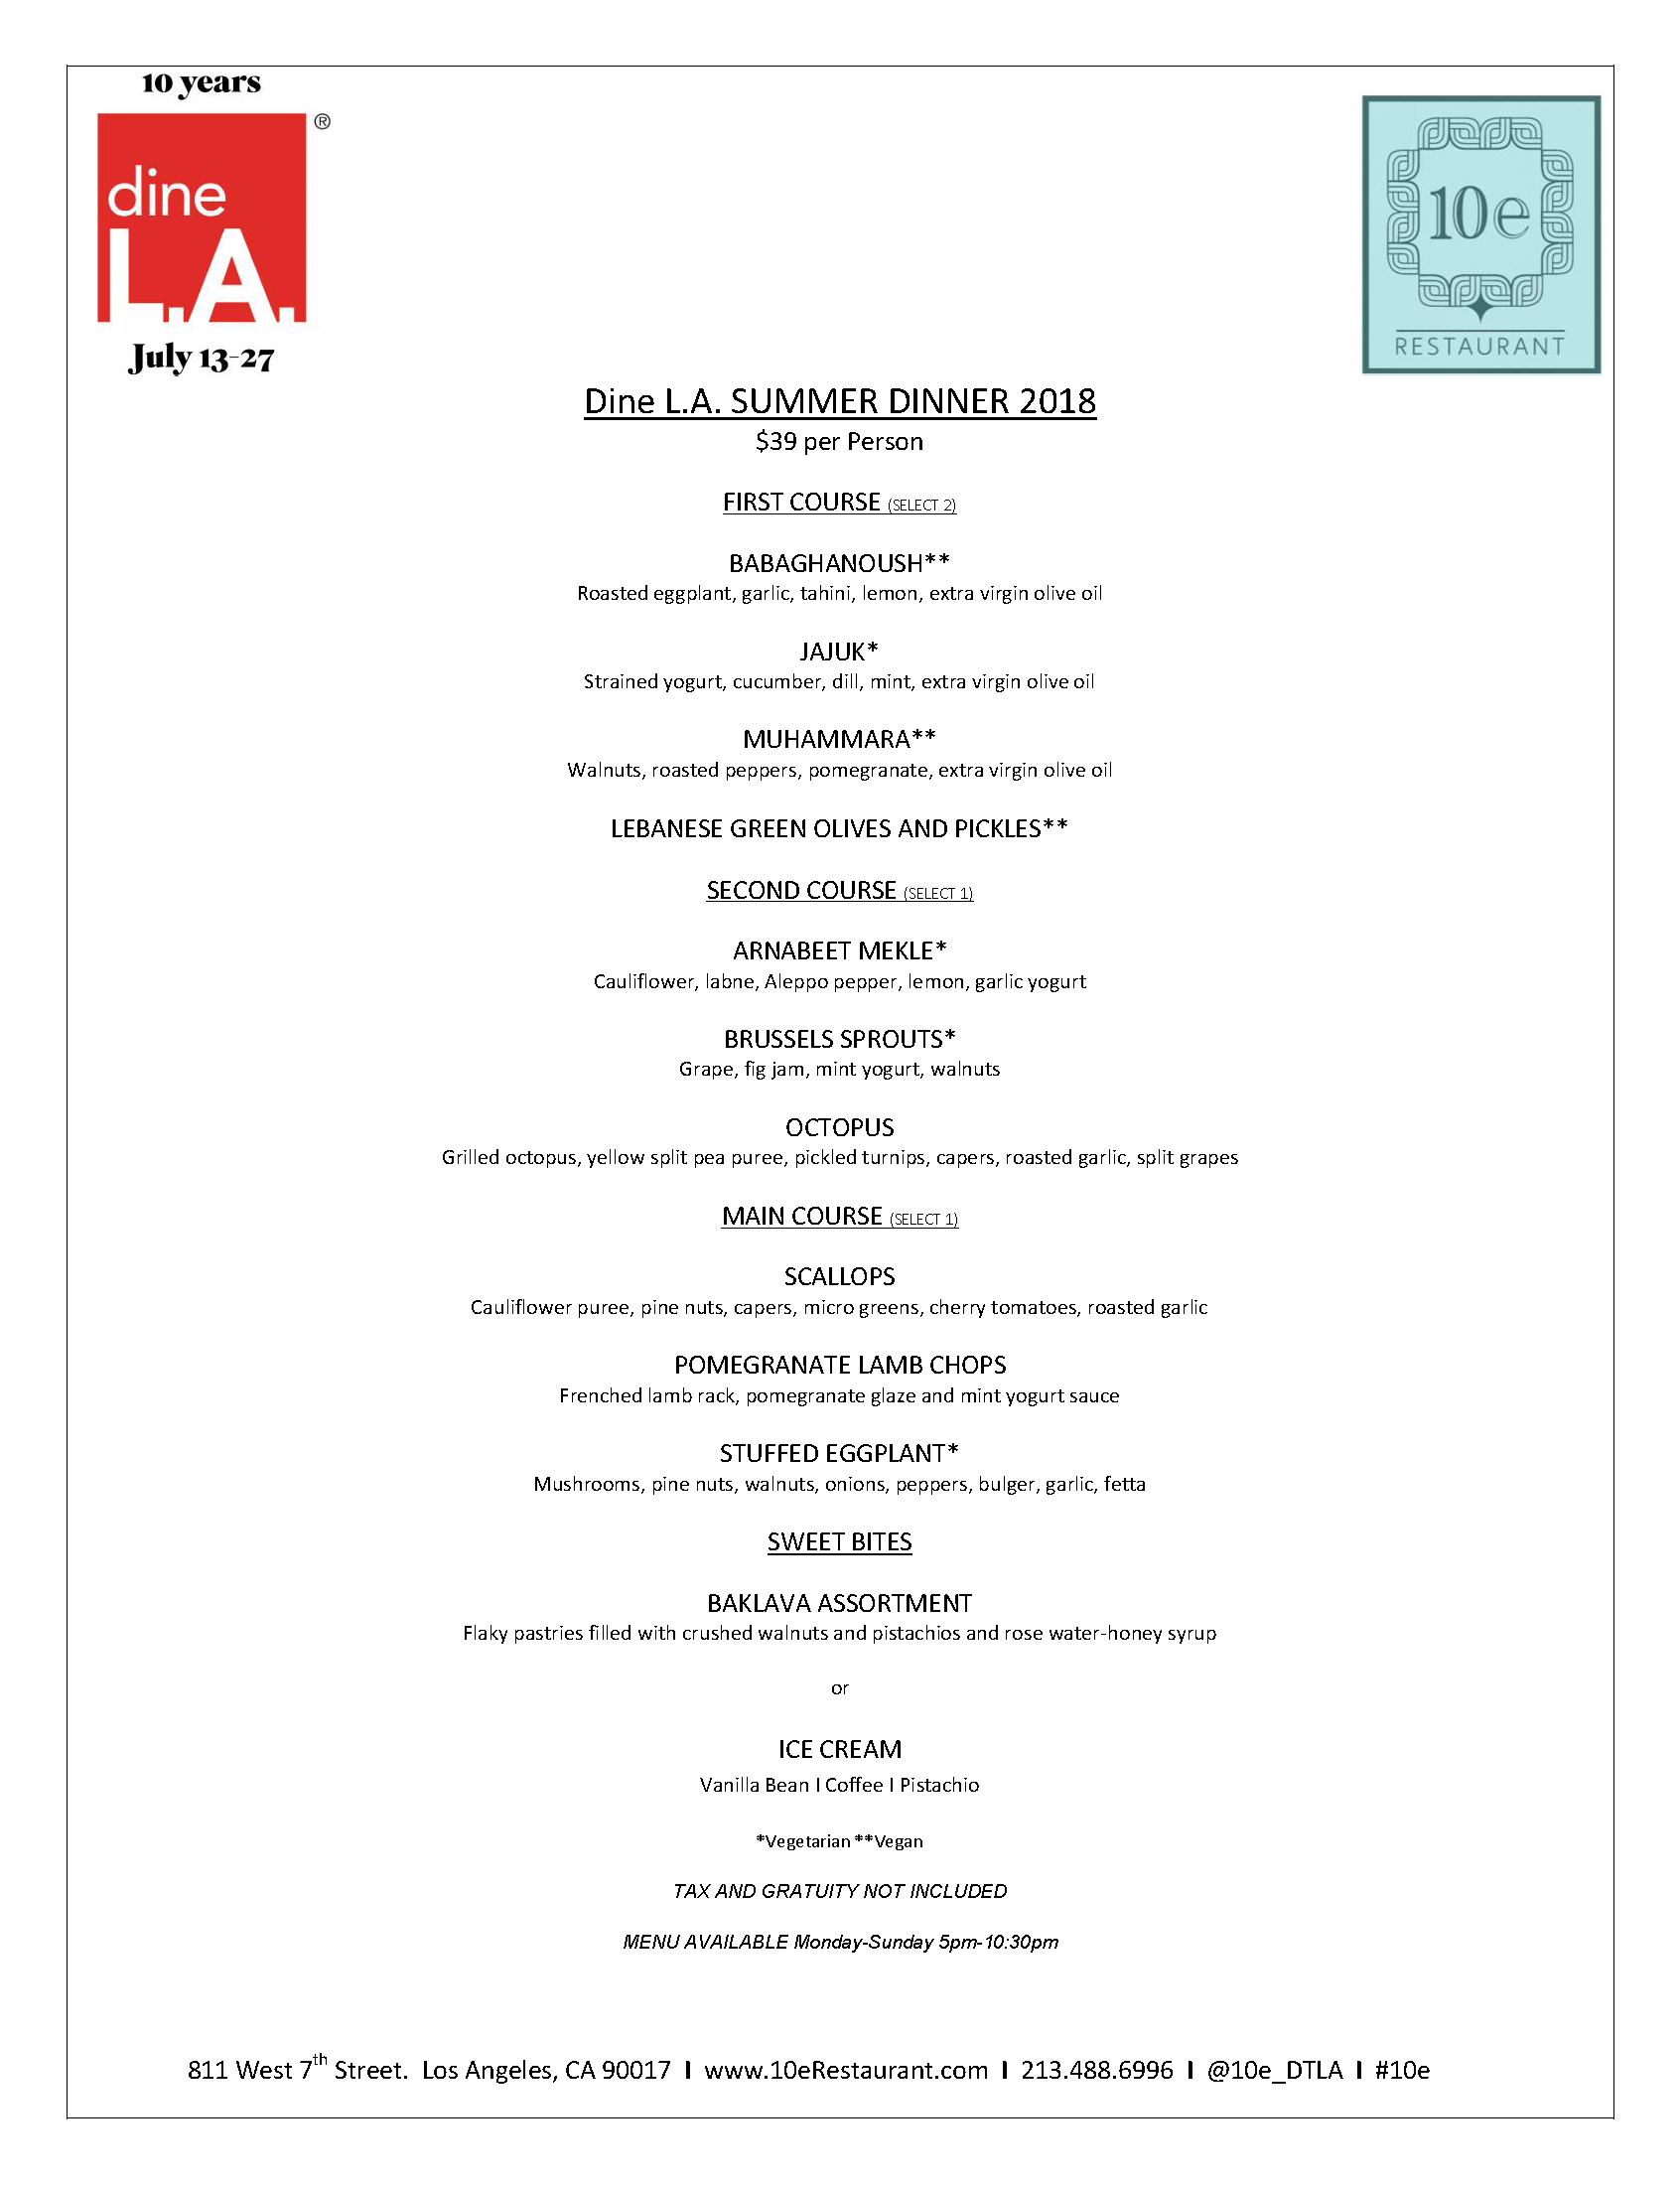 DINE LA DINNER SPECIALS SUMMER 2018.png